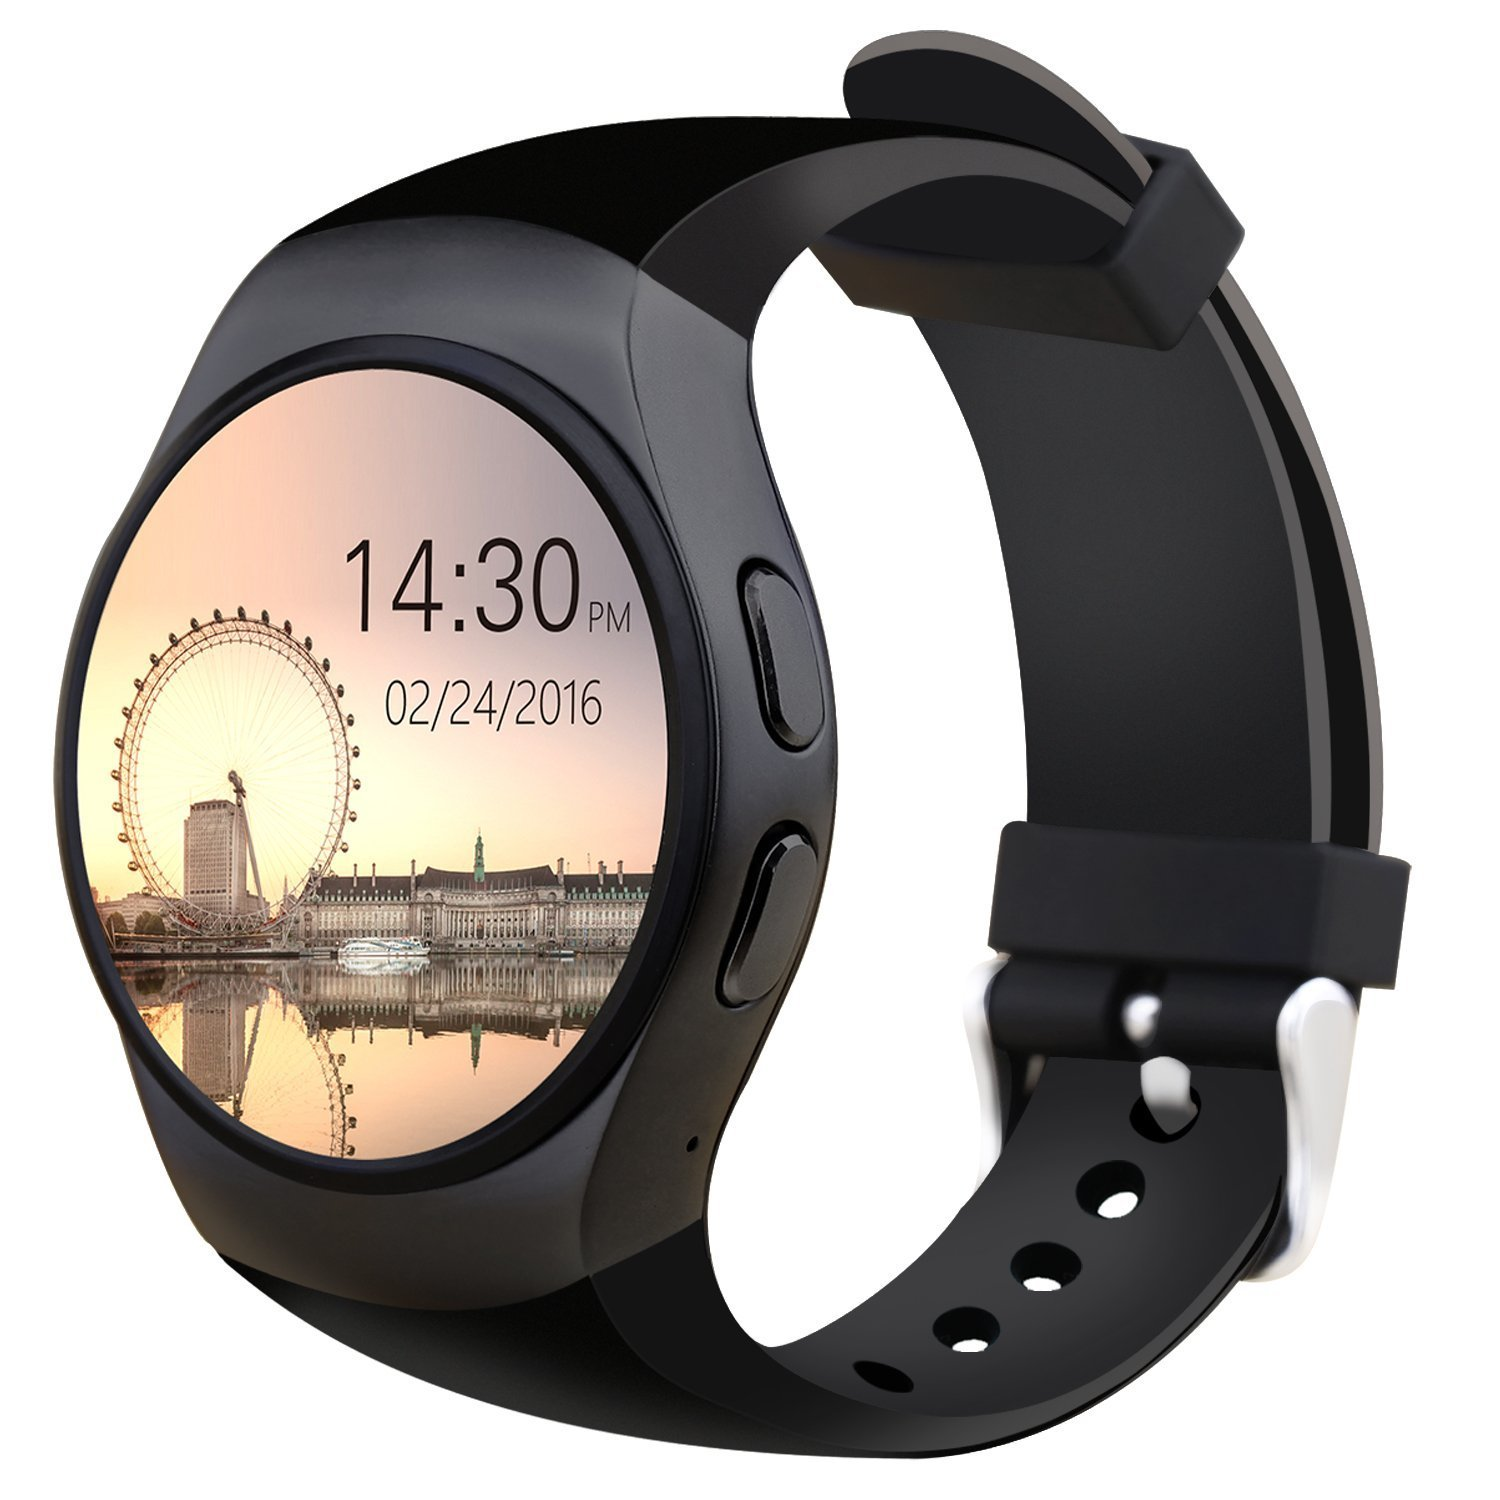 Bluetooth Smart Watch Phone KW18 Sim And TF Card Heart Rate Reloj Smartwatch Wearable Compatible For IOS Apple iPhone 5s/6/6s/SE Android Samsung HTC Sony LG ...